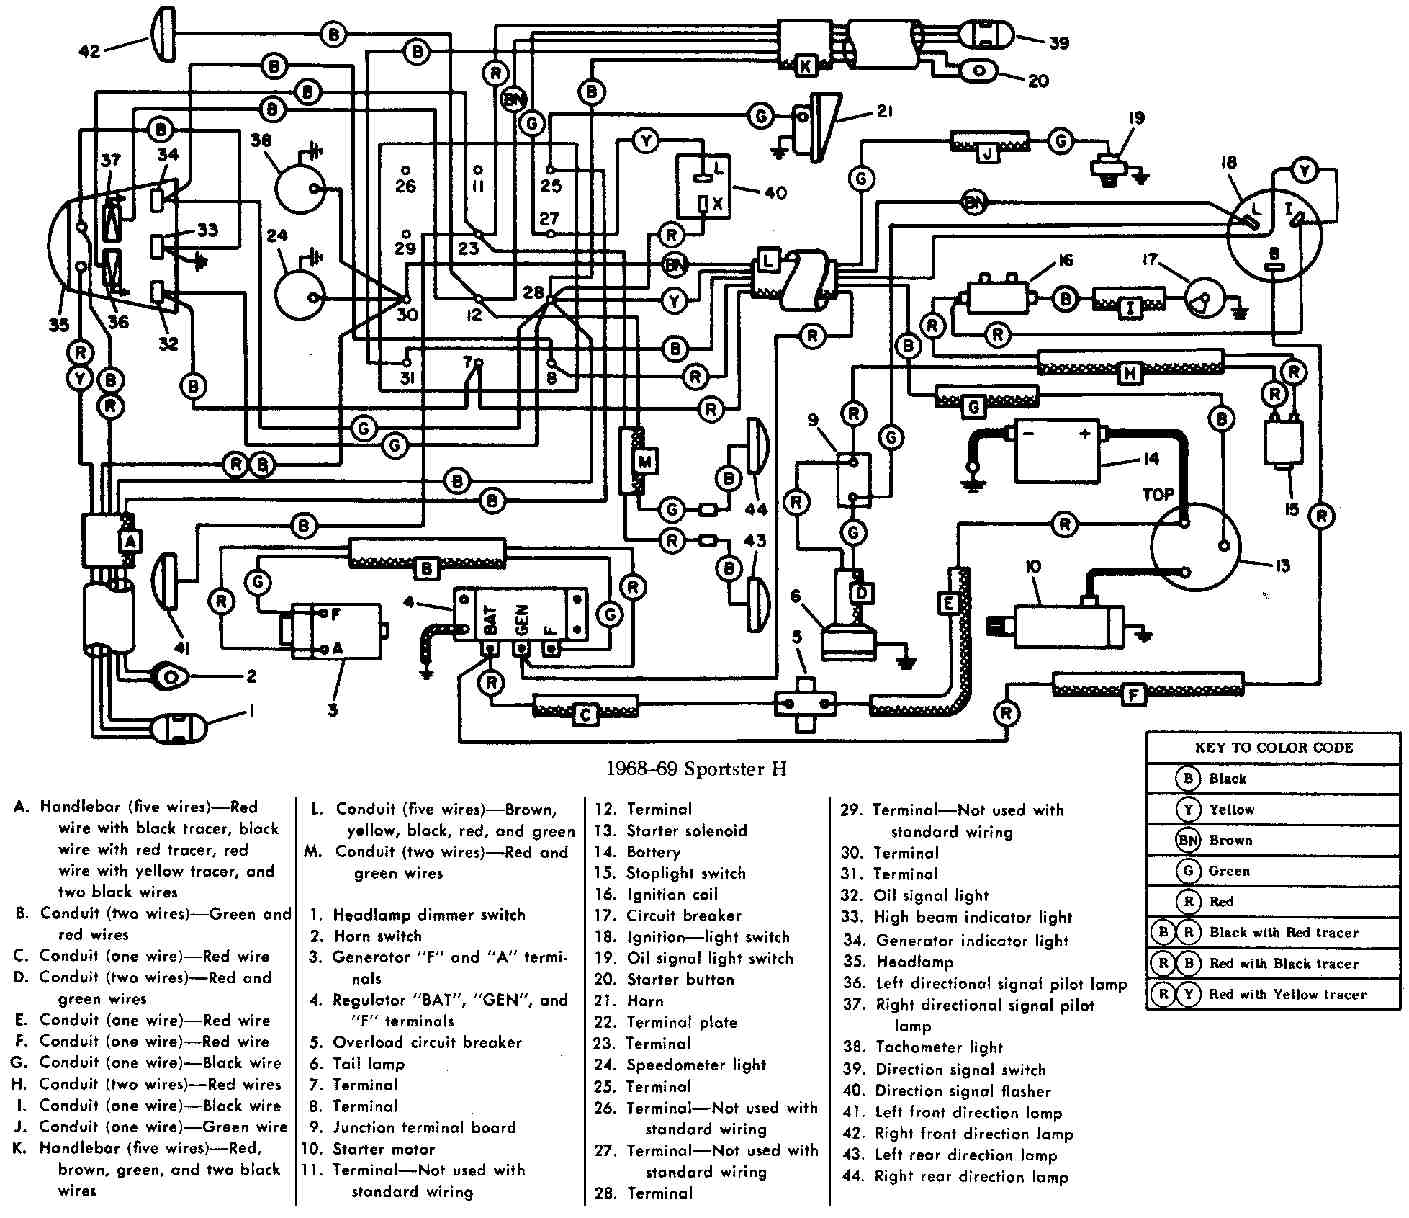 1998 Honda Goldwing Wiring Diagram Product Diagrams 2003 Harley Davidson Sportster 1968 1969 Electrical 1995 Gl1200